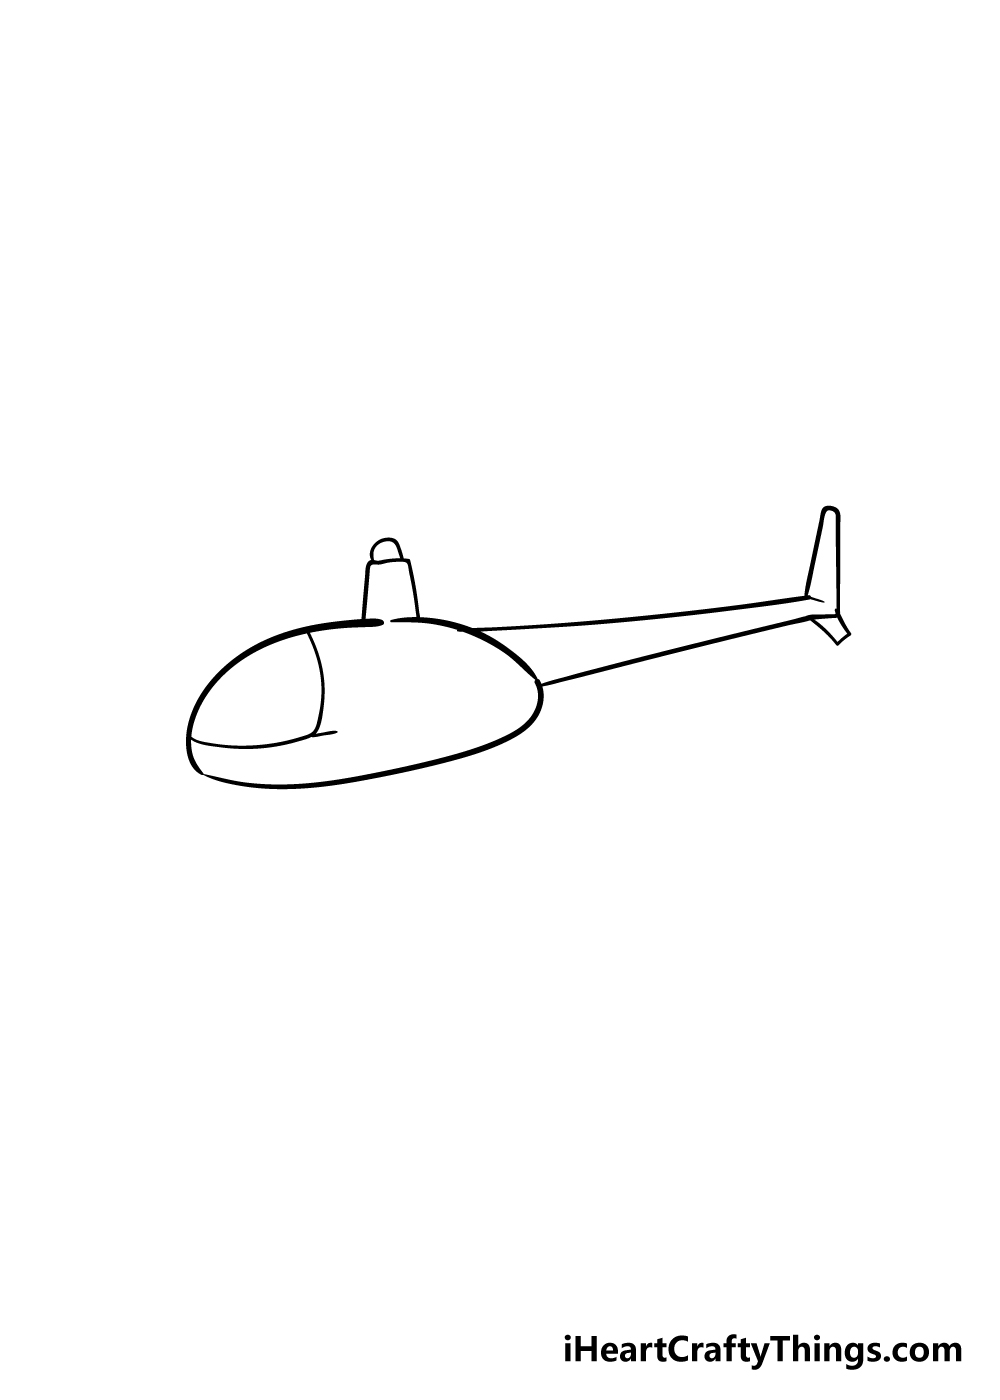 helicopter drawing step 2